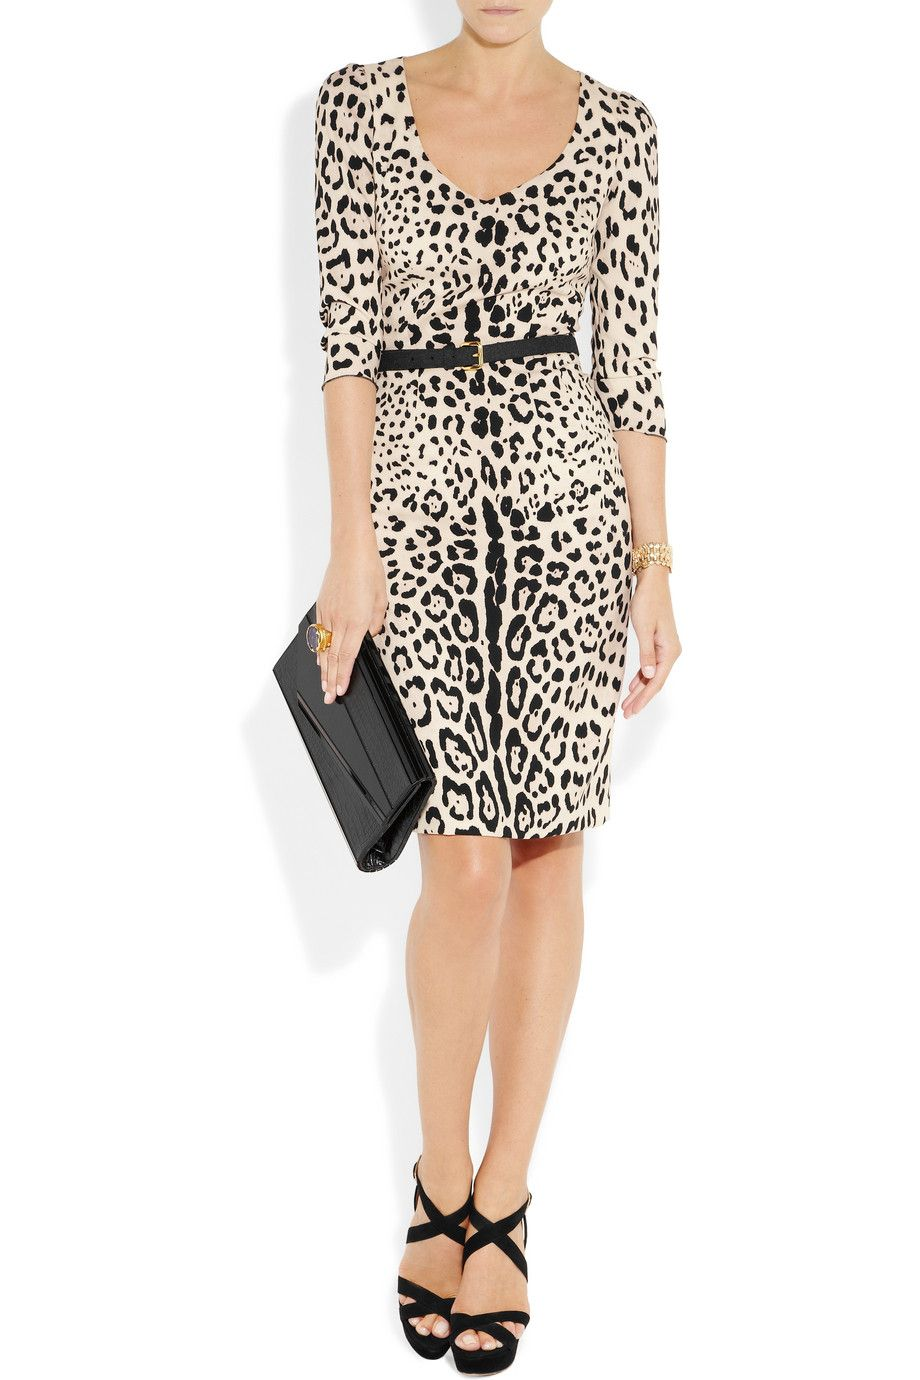 Gabana Dolce zebra dress collection recommend to wear in autumn in 2019